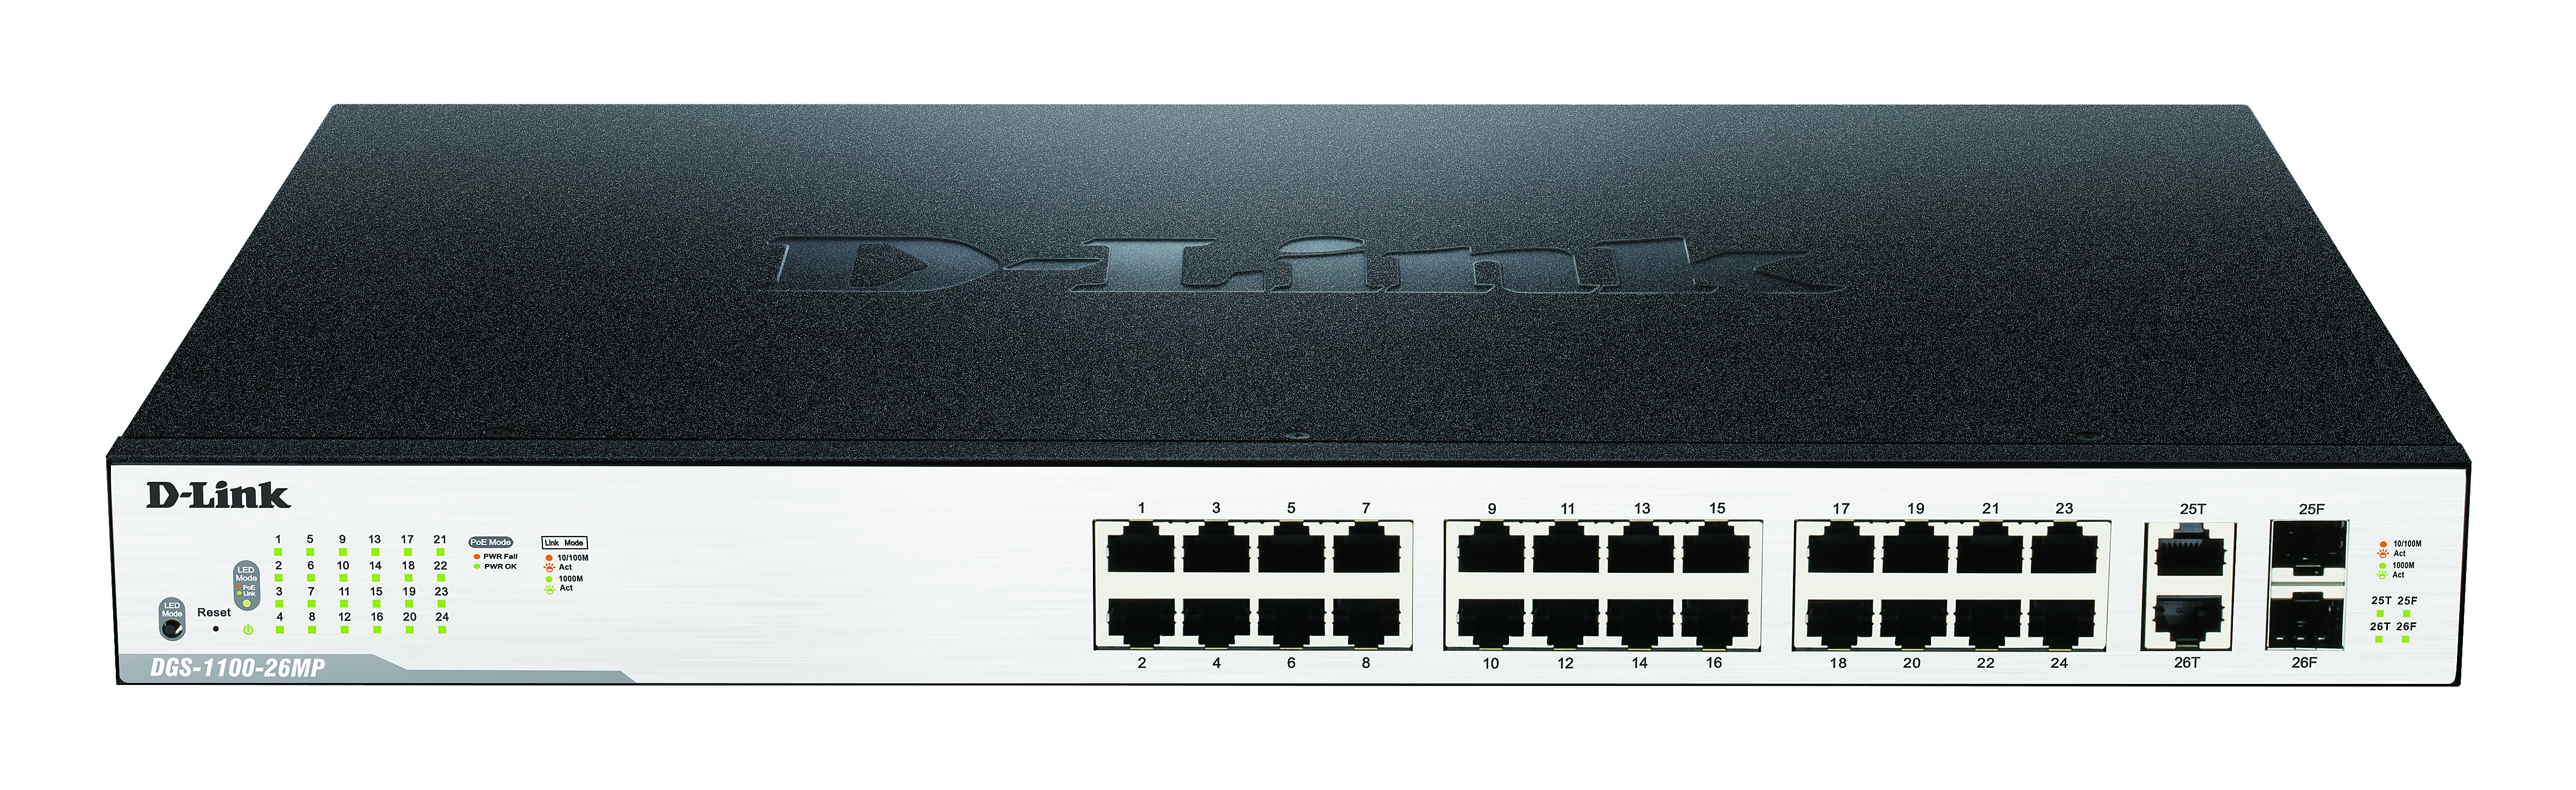 26-Port GB EasySmart Switch with 242W power budget